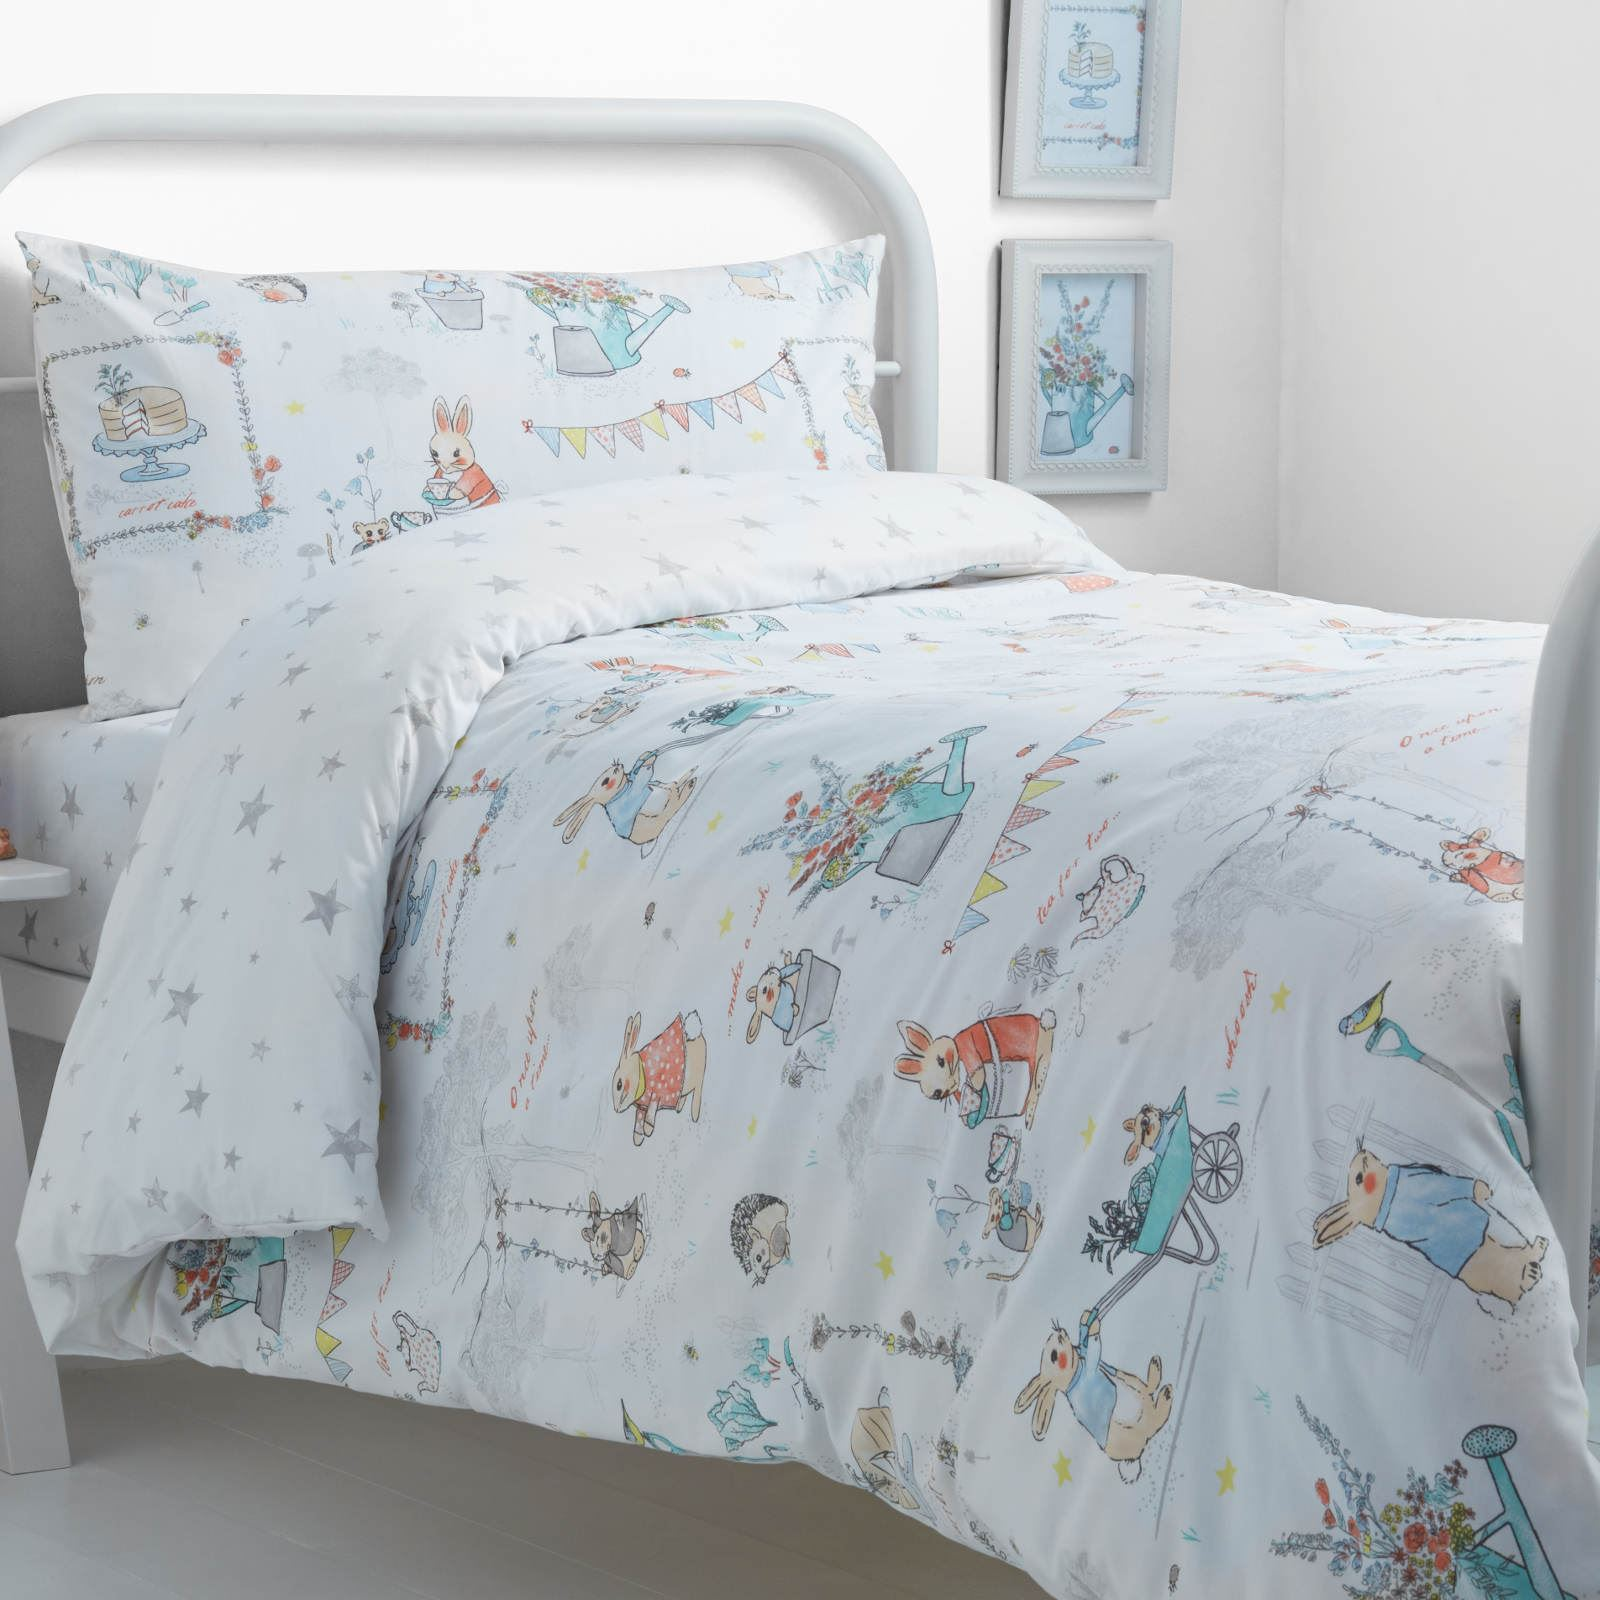 This Beautifully Hand Drawn Bedding Print Features Little Billy Bunny  Enjoying A Tea Party With His Friends And Family. This Classic Design Has A  Vintage ...